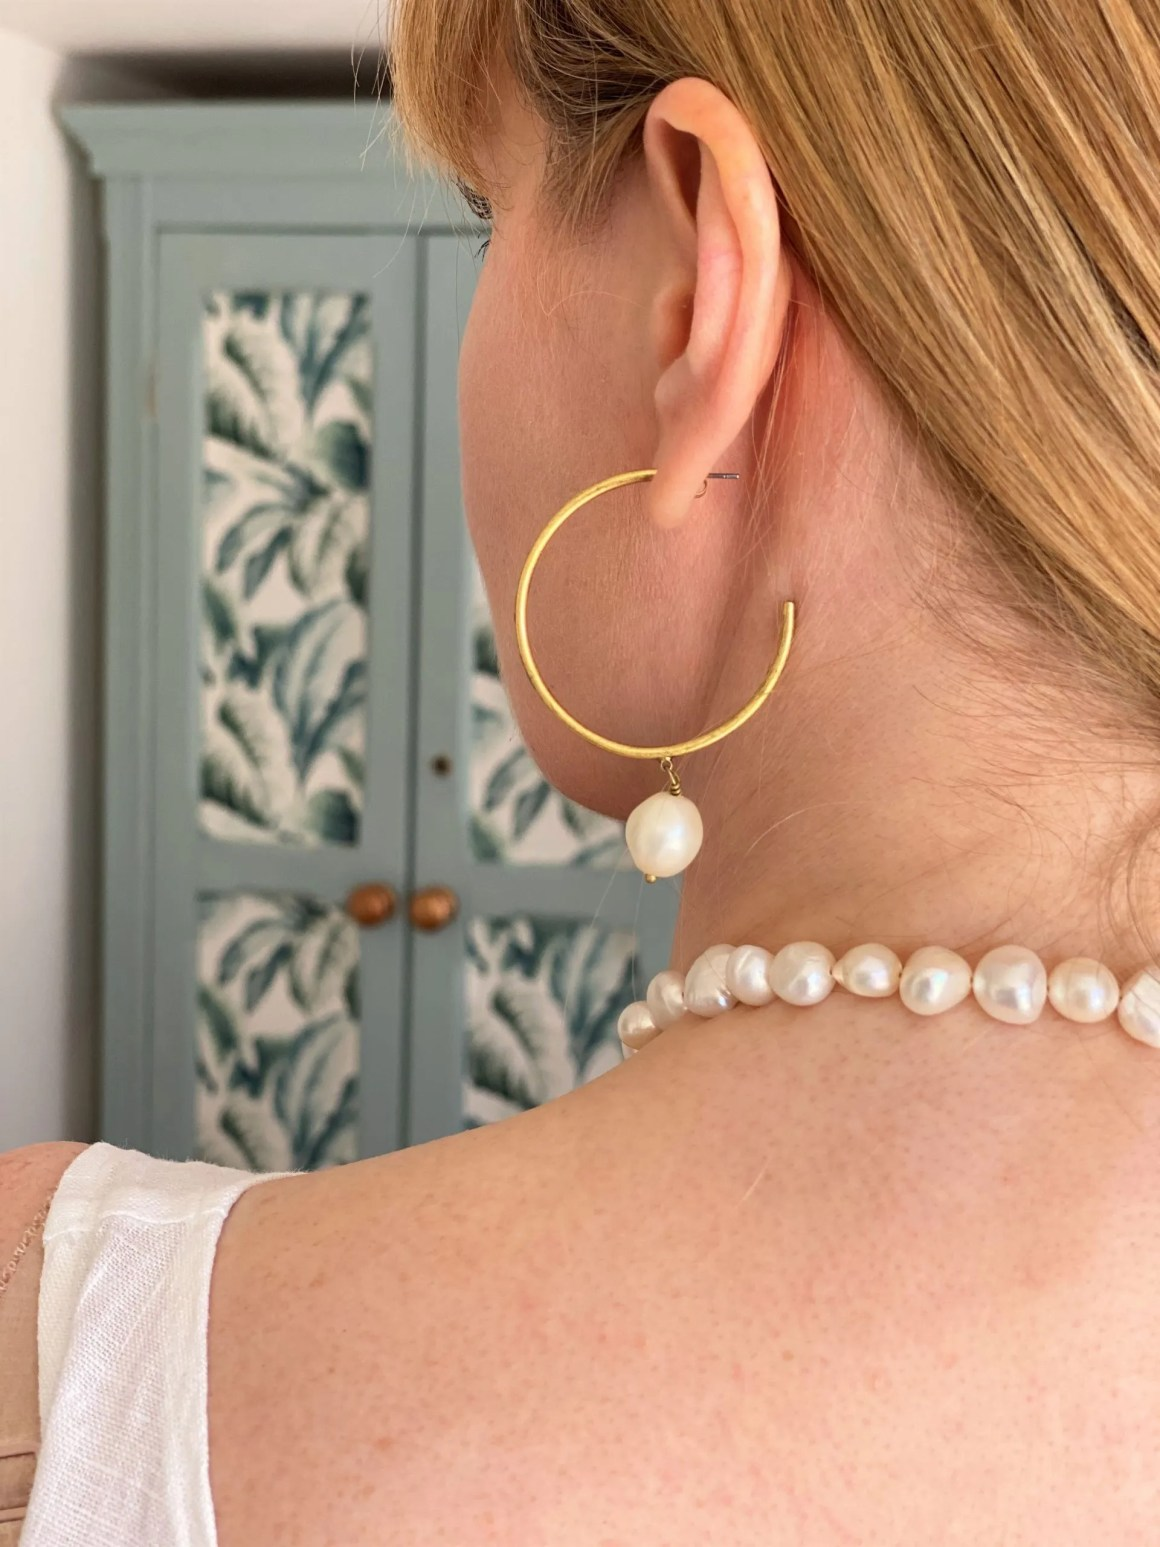 freshwater pearl earrings and freshwater pearl necklace